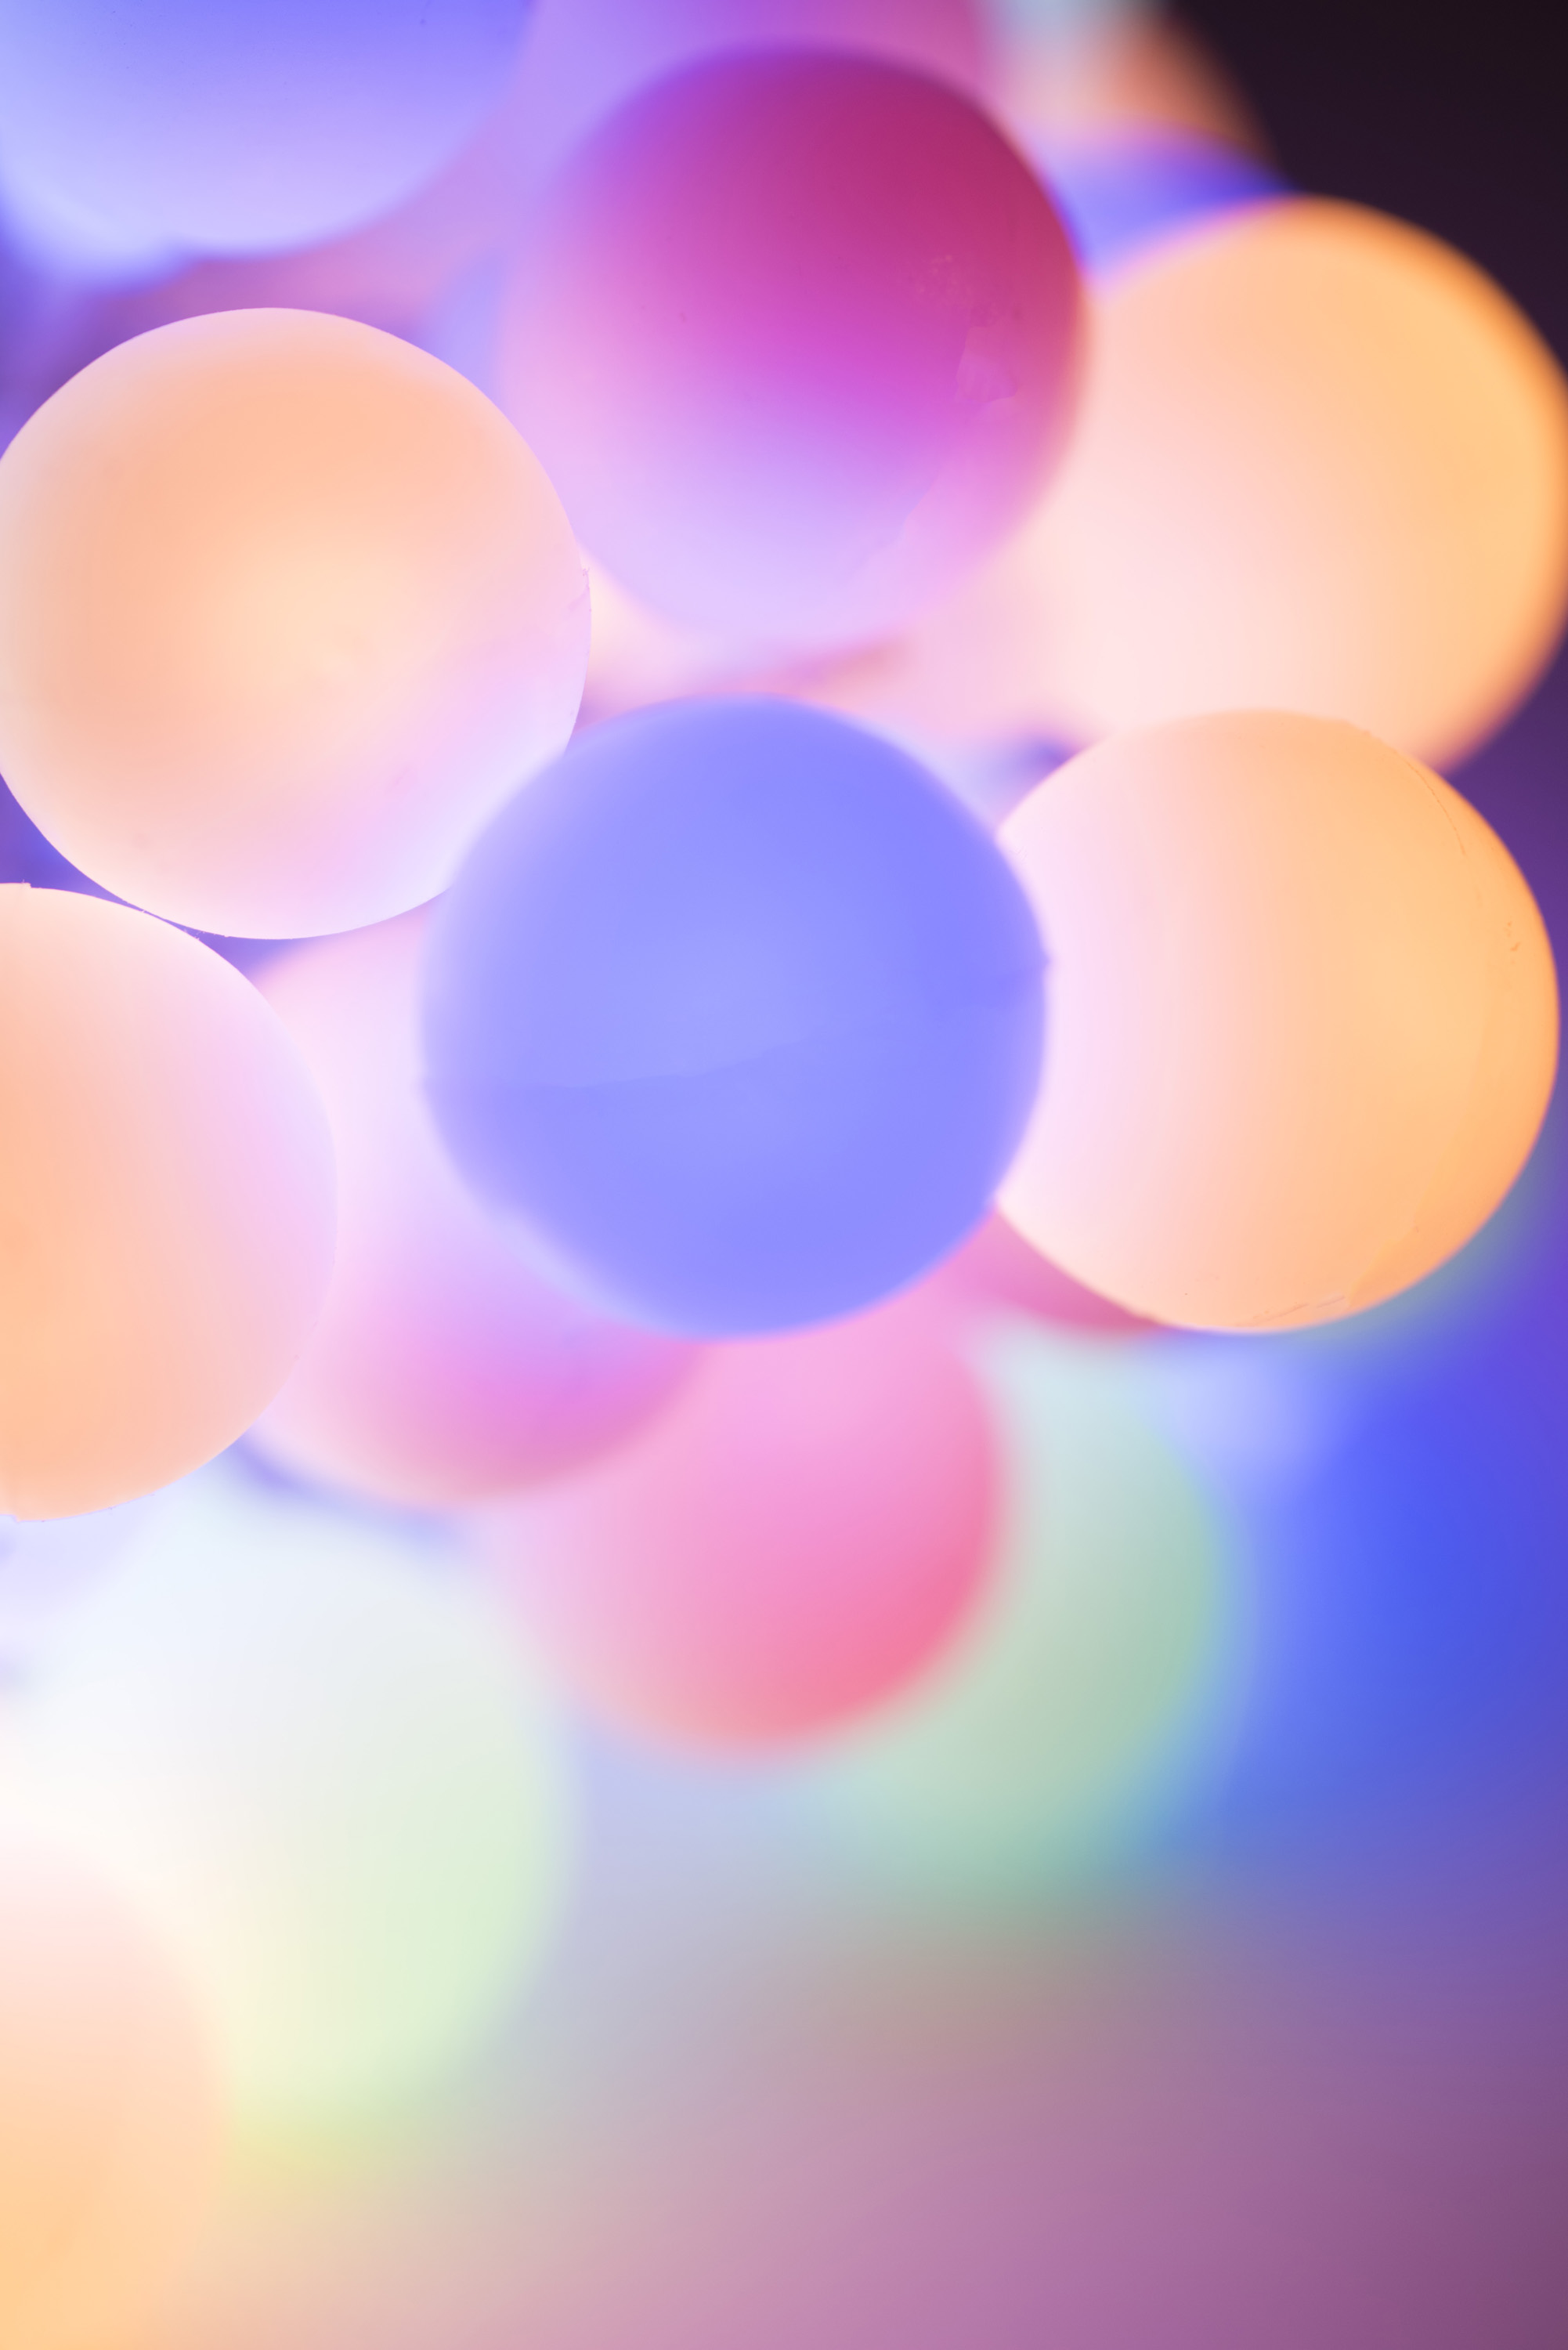 Christmas background of circular pastel colored lights in a soft blur of shallow dof focus and copy space for your seasonal greeting